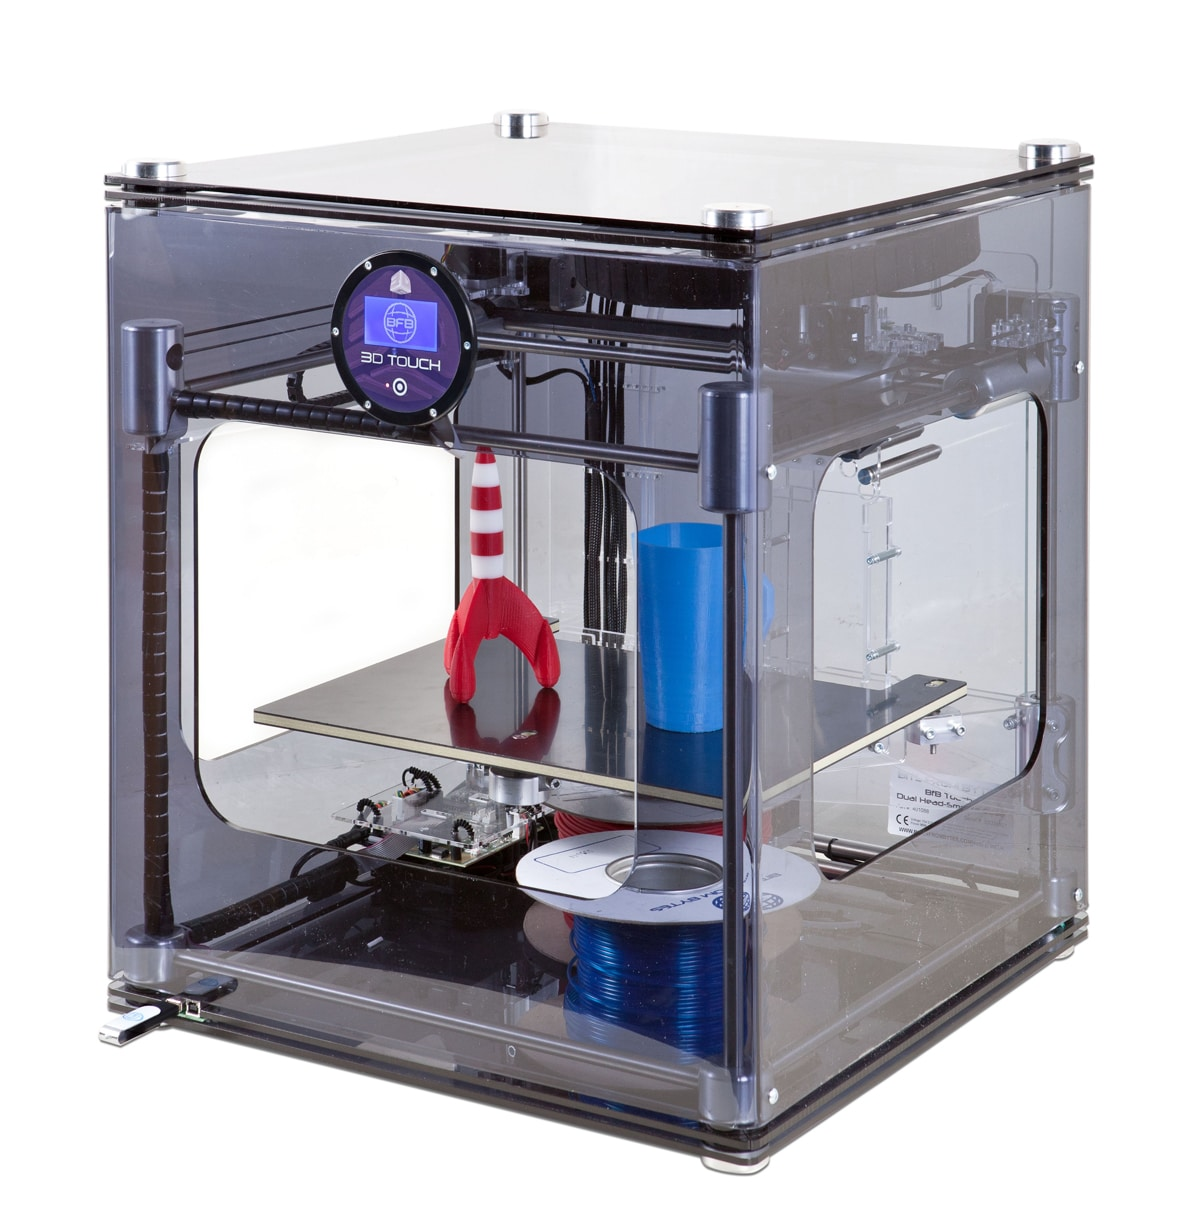 object-creation-3d-printer